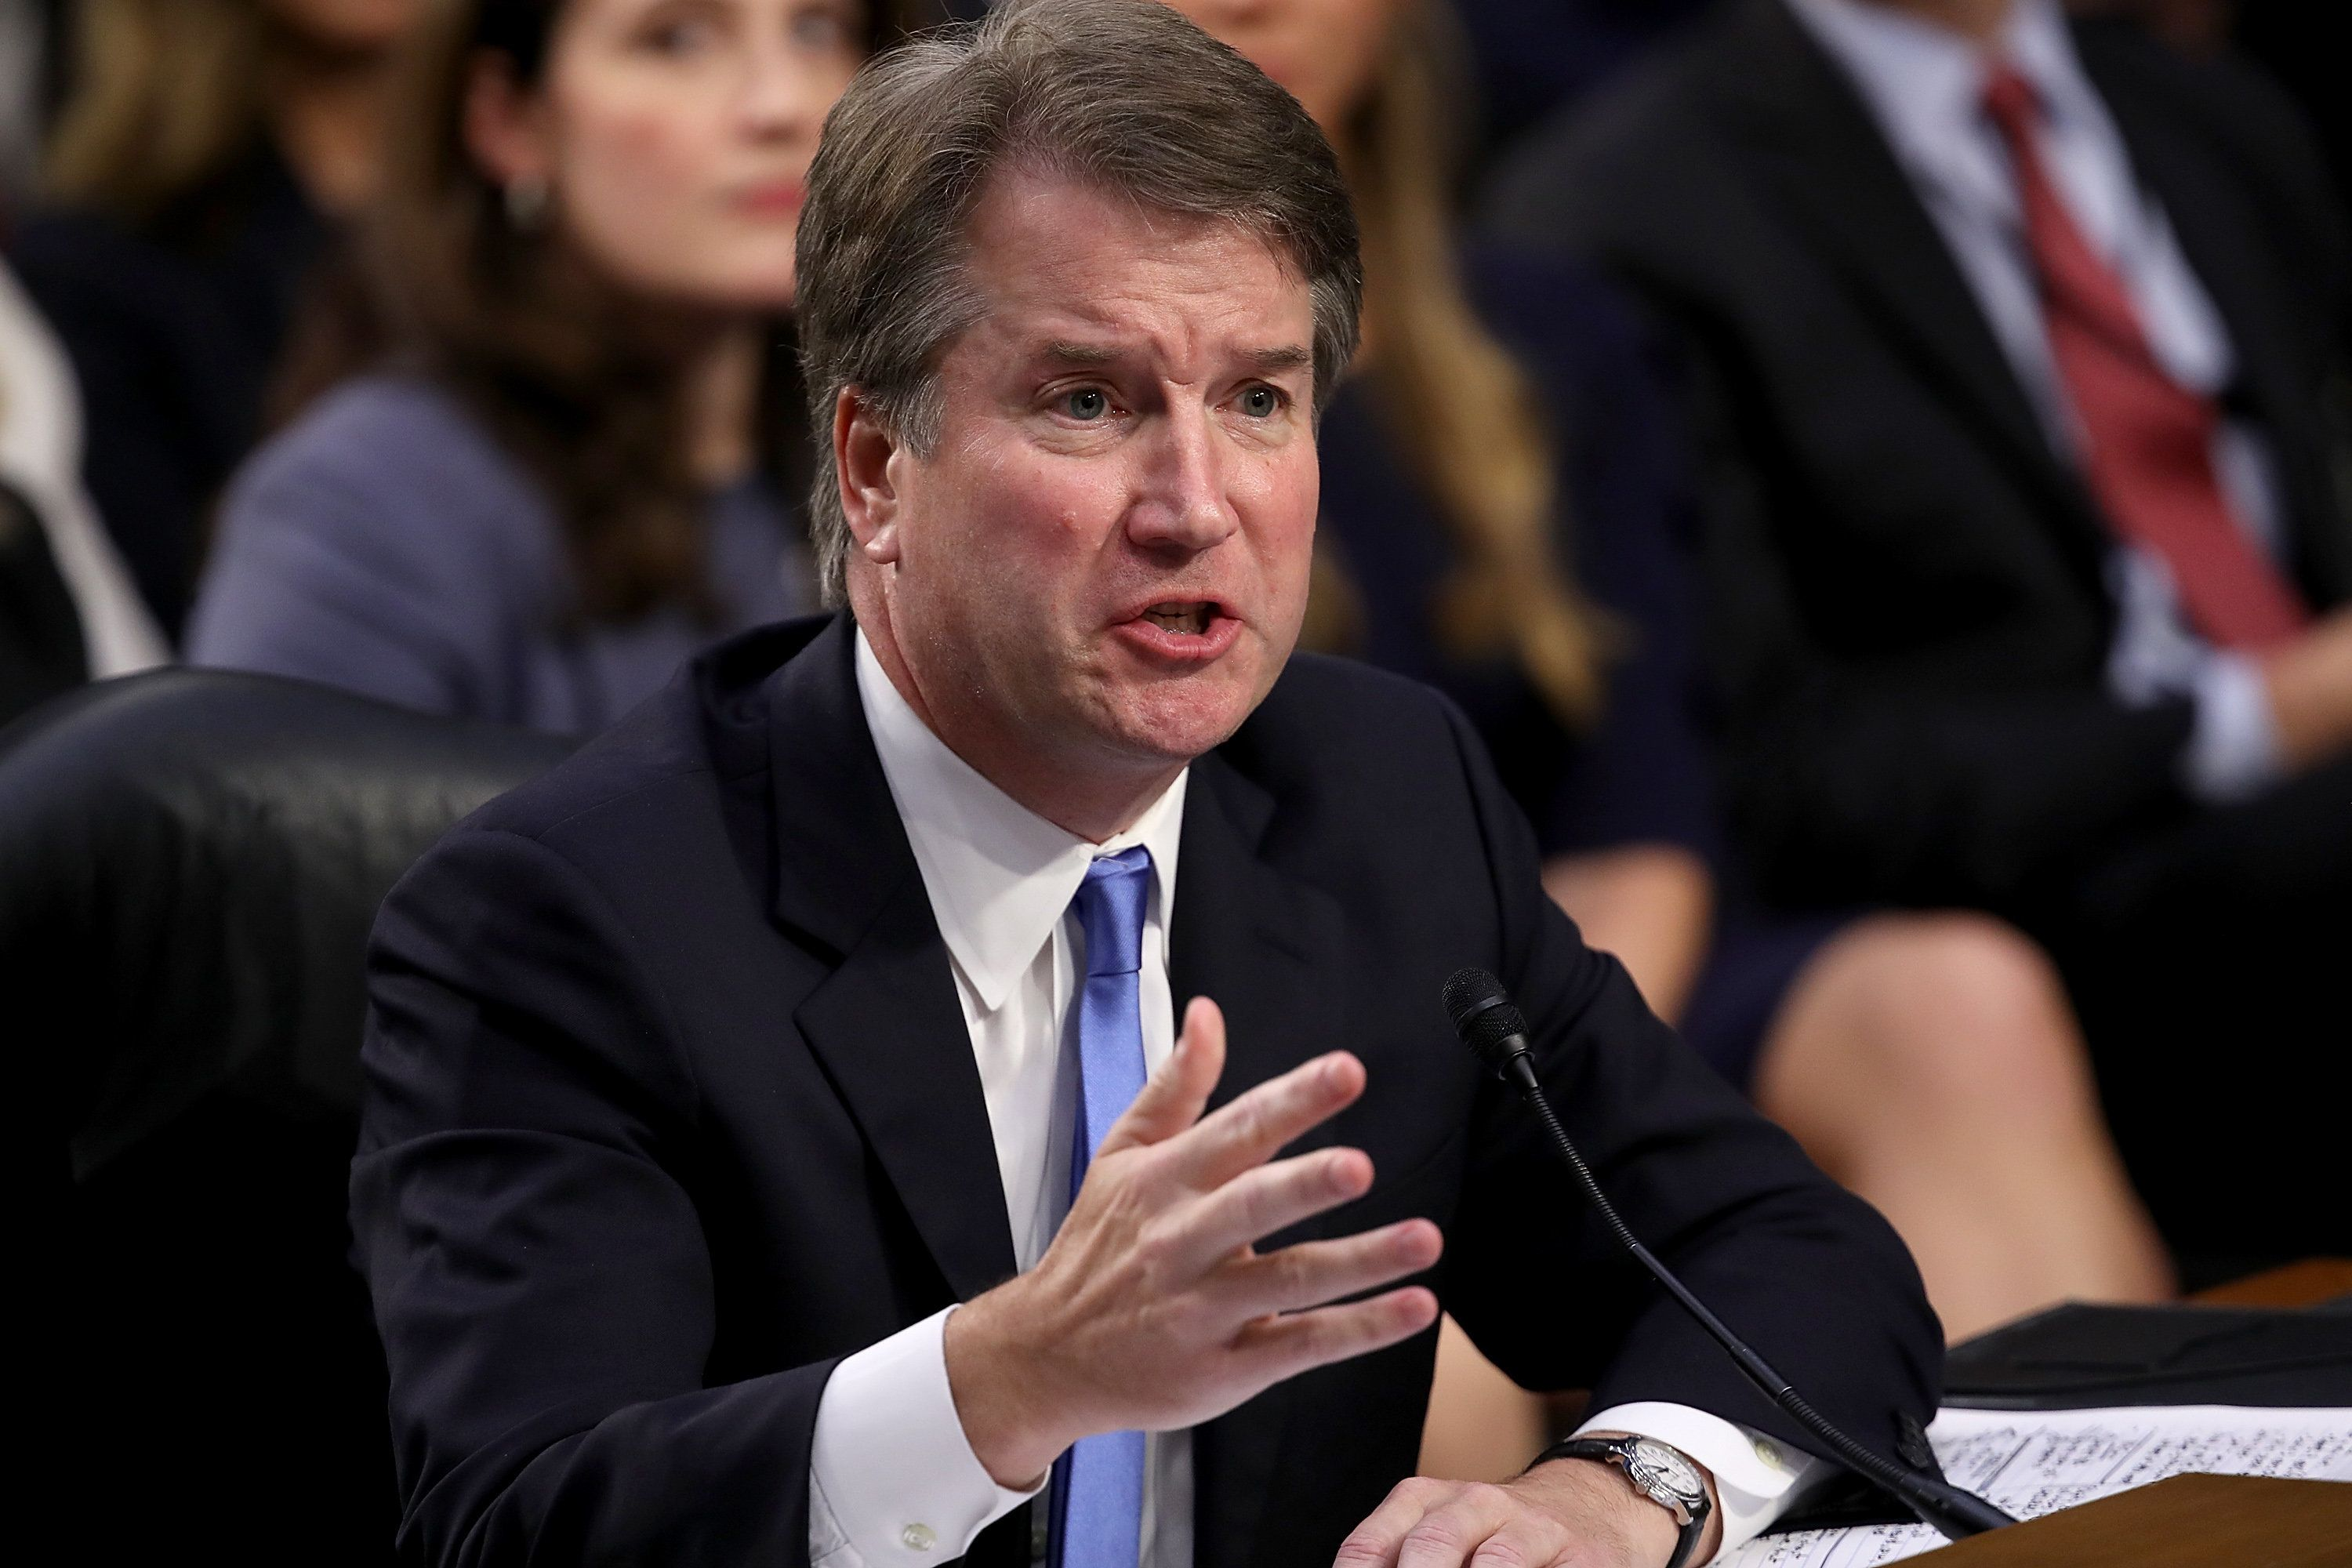 Trump questions credibility of second Kavanaugh accuser